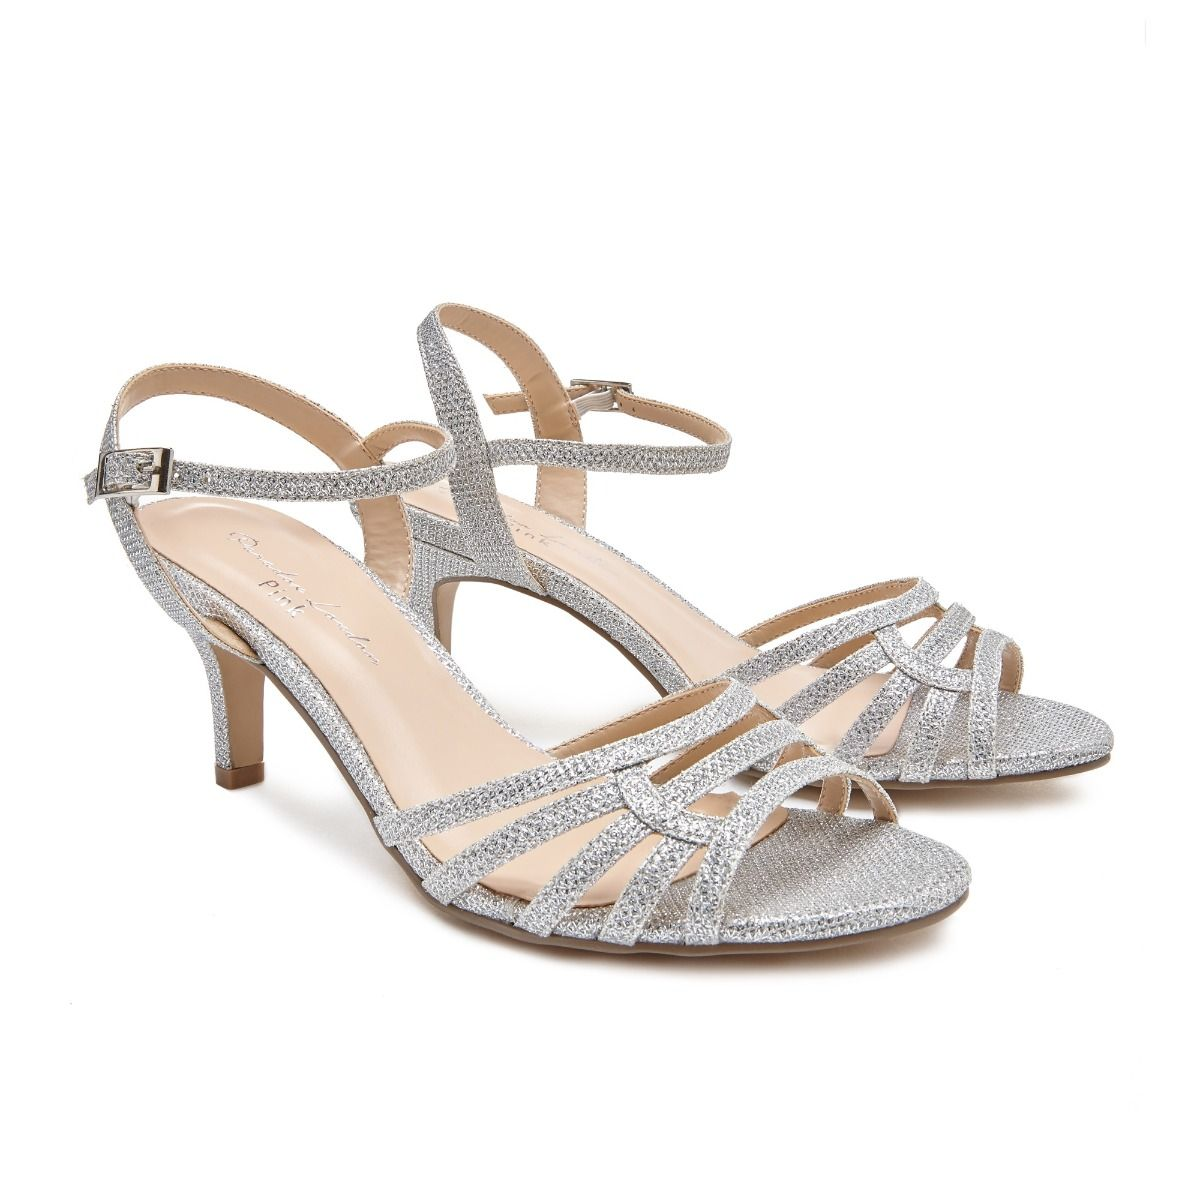 c2cf6226c0 Laurie Wide Fit Silver Glitter Strappy Sandal | Low Heel Wide Fit Sandals |  Ladies Shoes | Paradox London